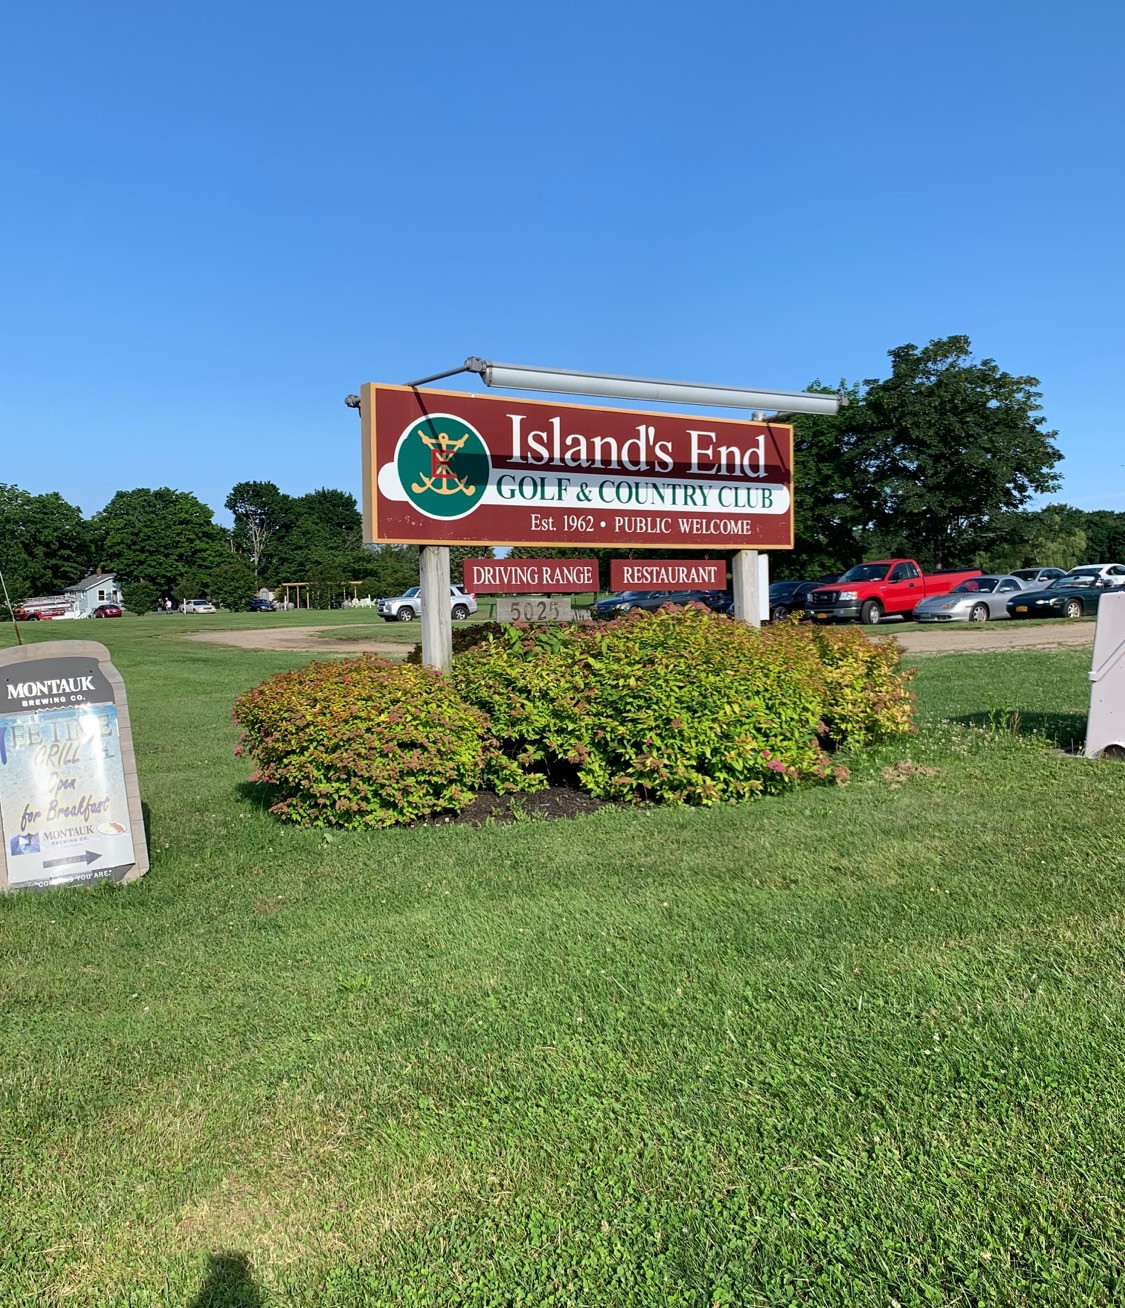 Island's End Golf and Country Club